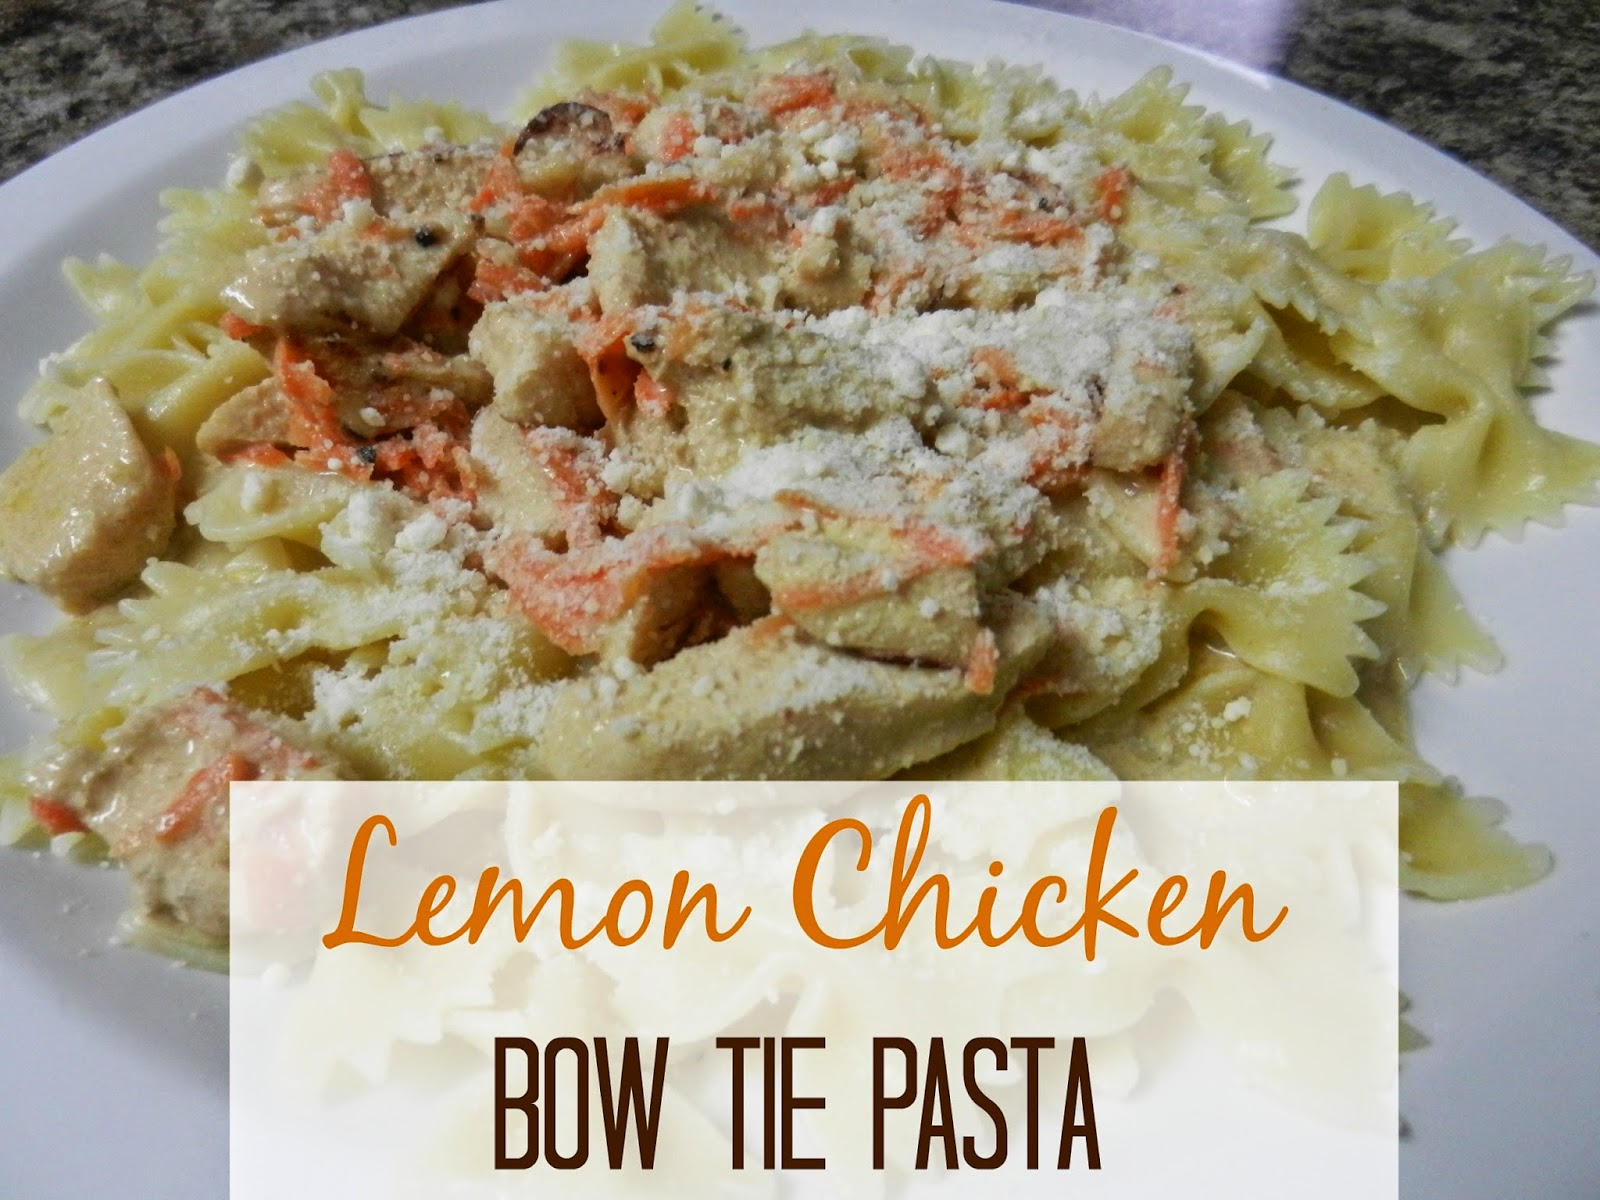 Lemon Chicken Bow Tie Pasta